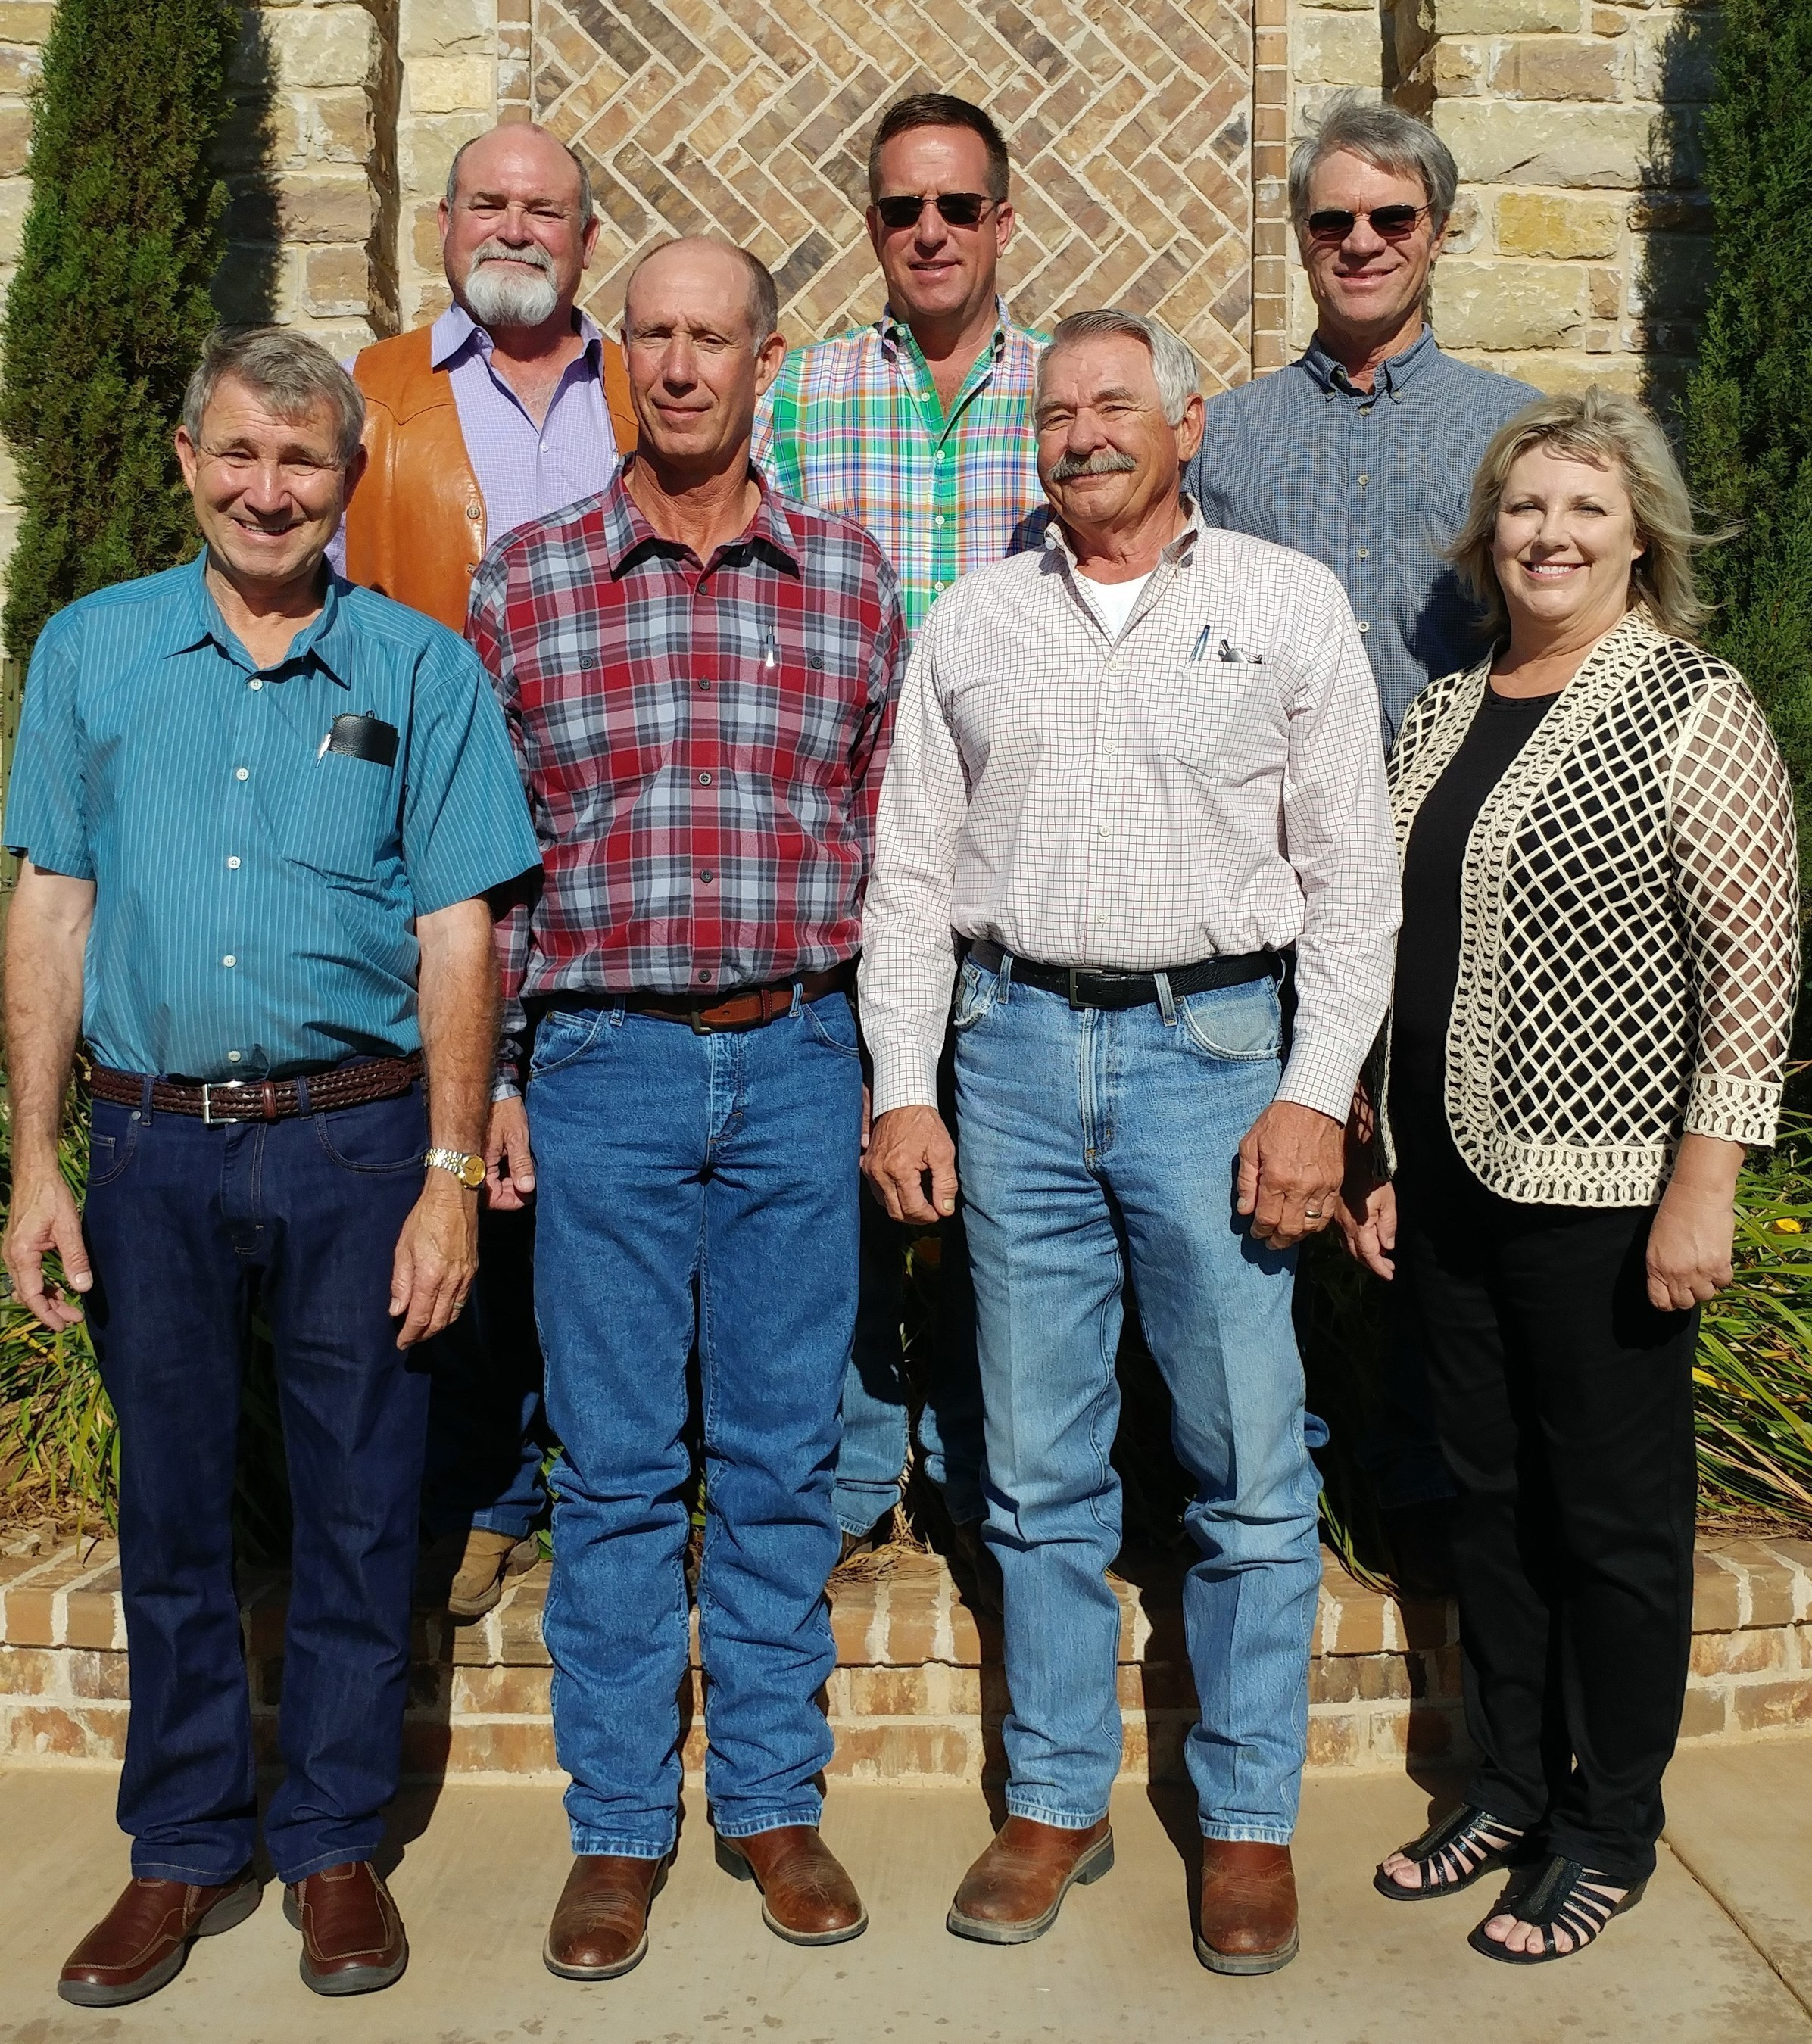 The all-farmer Board of Directors for the Texas Organic Cotton Marketing Cooperative is made up of: (front row, from left) Jimmy Wedel, Carl Pepper, Ron Goebel, and Darlene Vogler; (back row from left) Mark Wilkes, Jeff Payne, and Cliff Bingham.